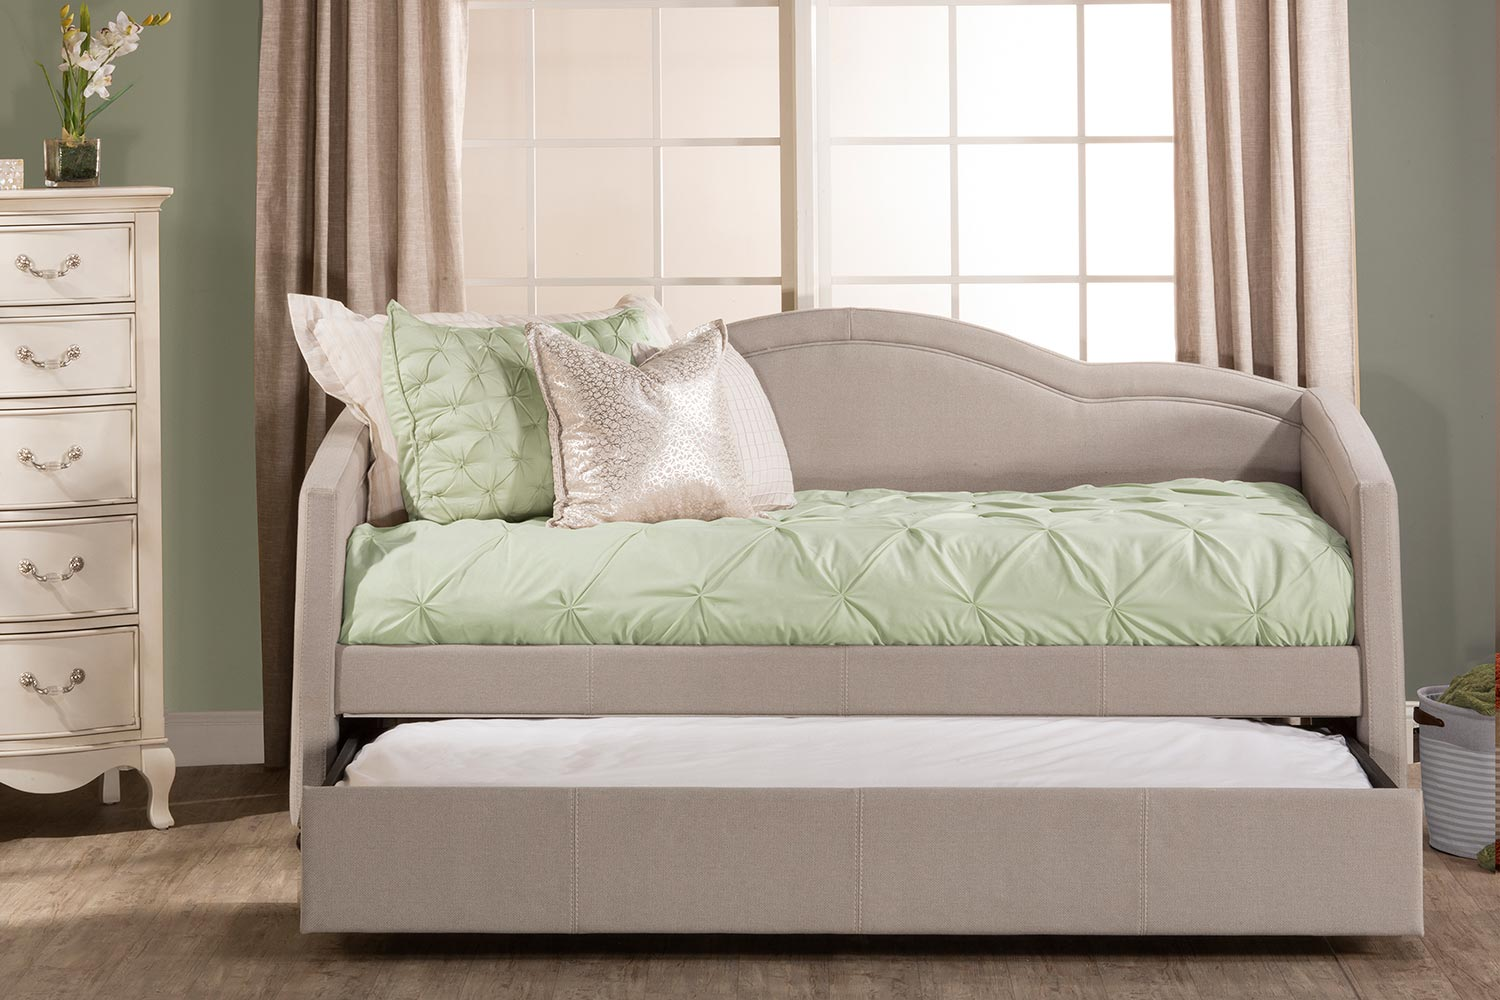 Hillsdale Jasmine Daybed with Trundle - Dove Gray Fabric